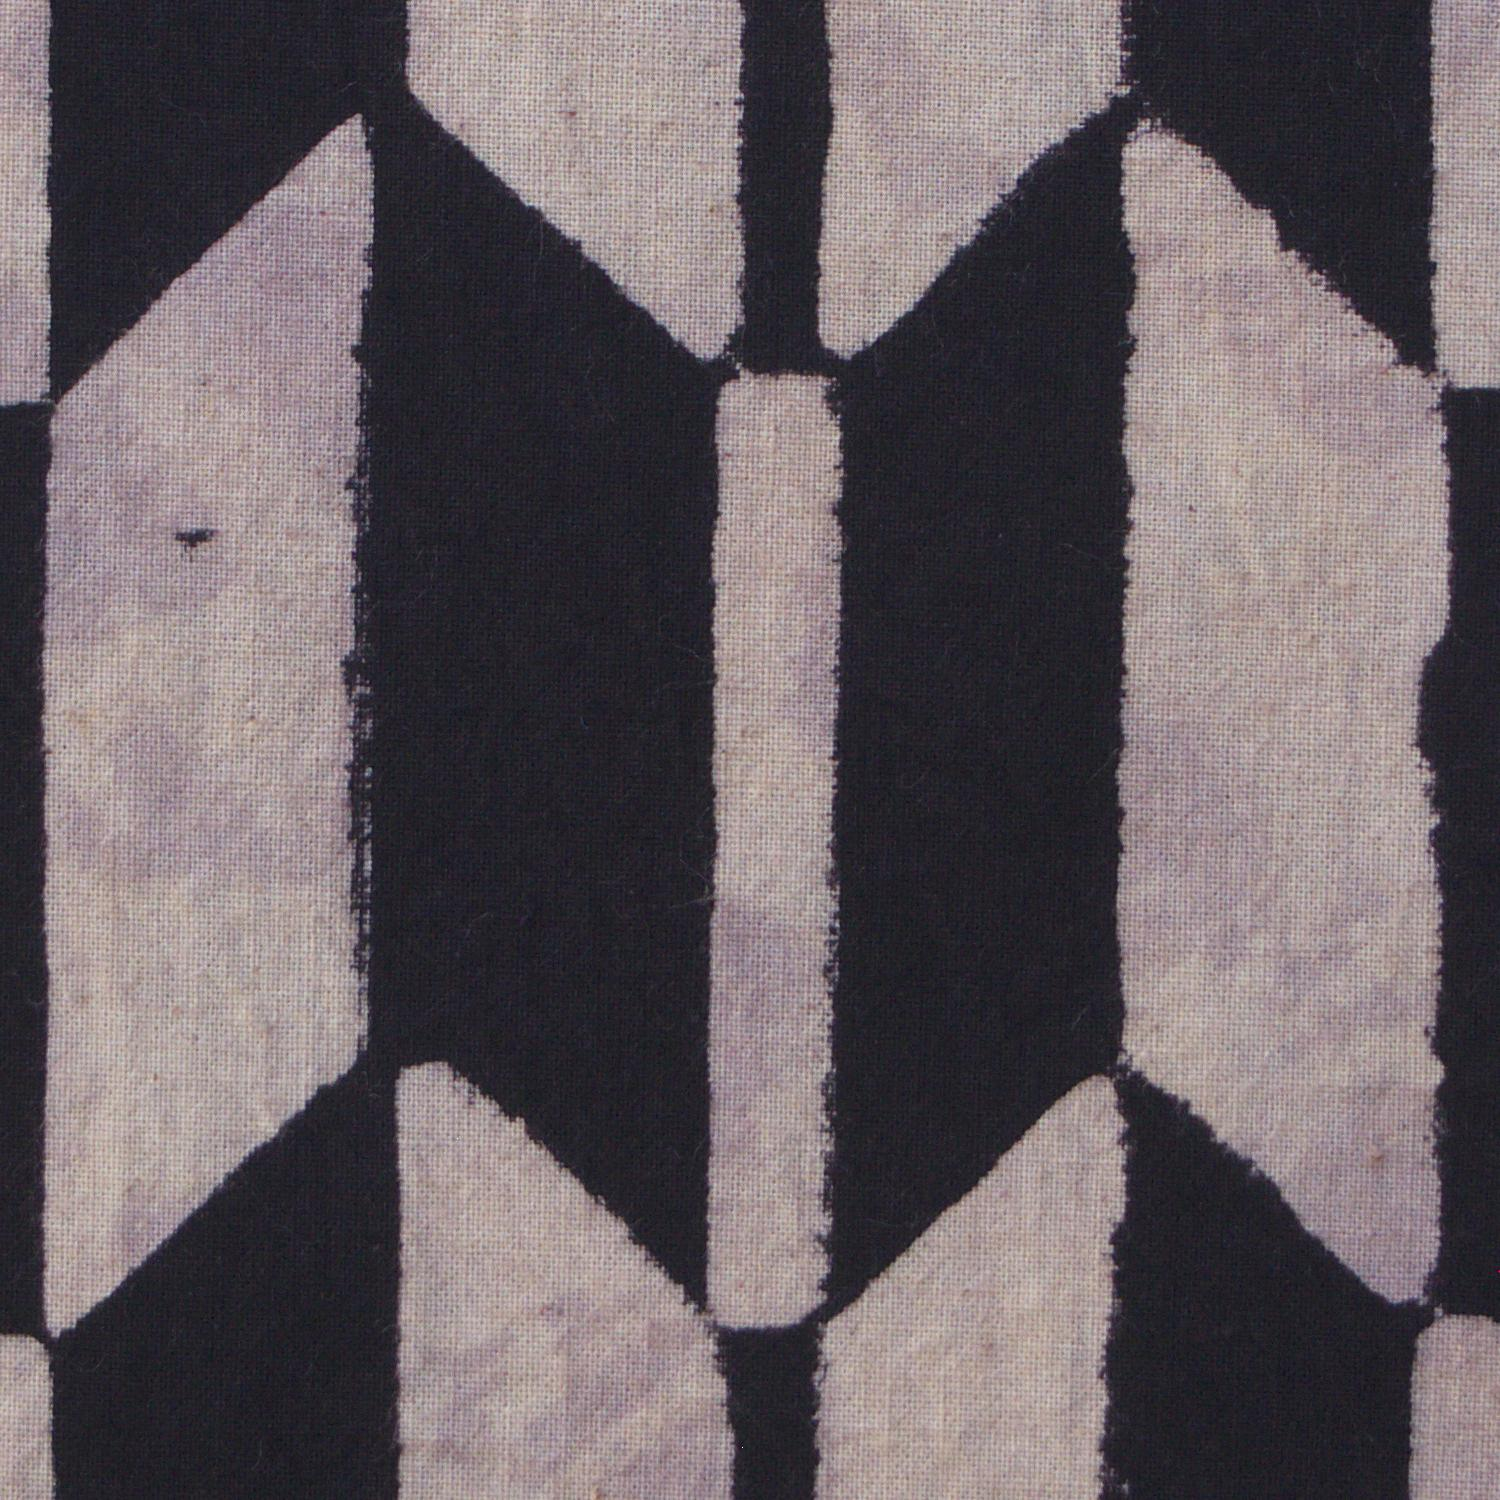 100% Block-Printed Cotton Fabric From India- Ajrak - Black White Resist Fletching Print - Close Up